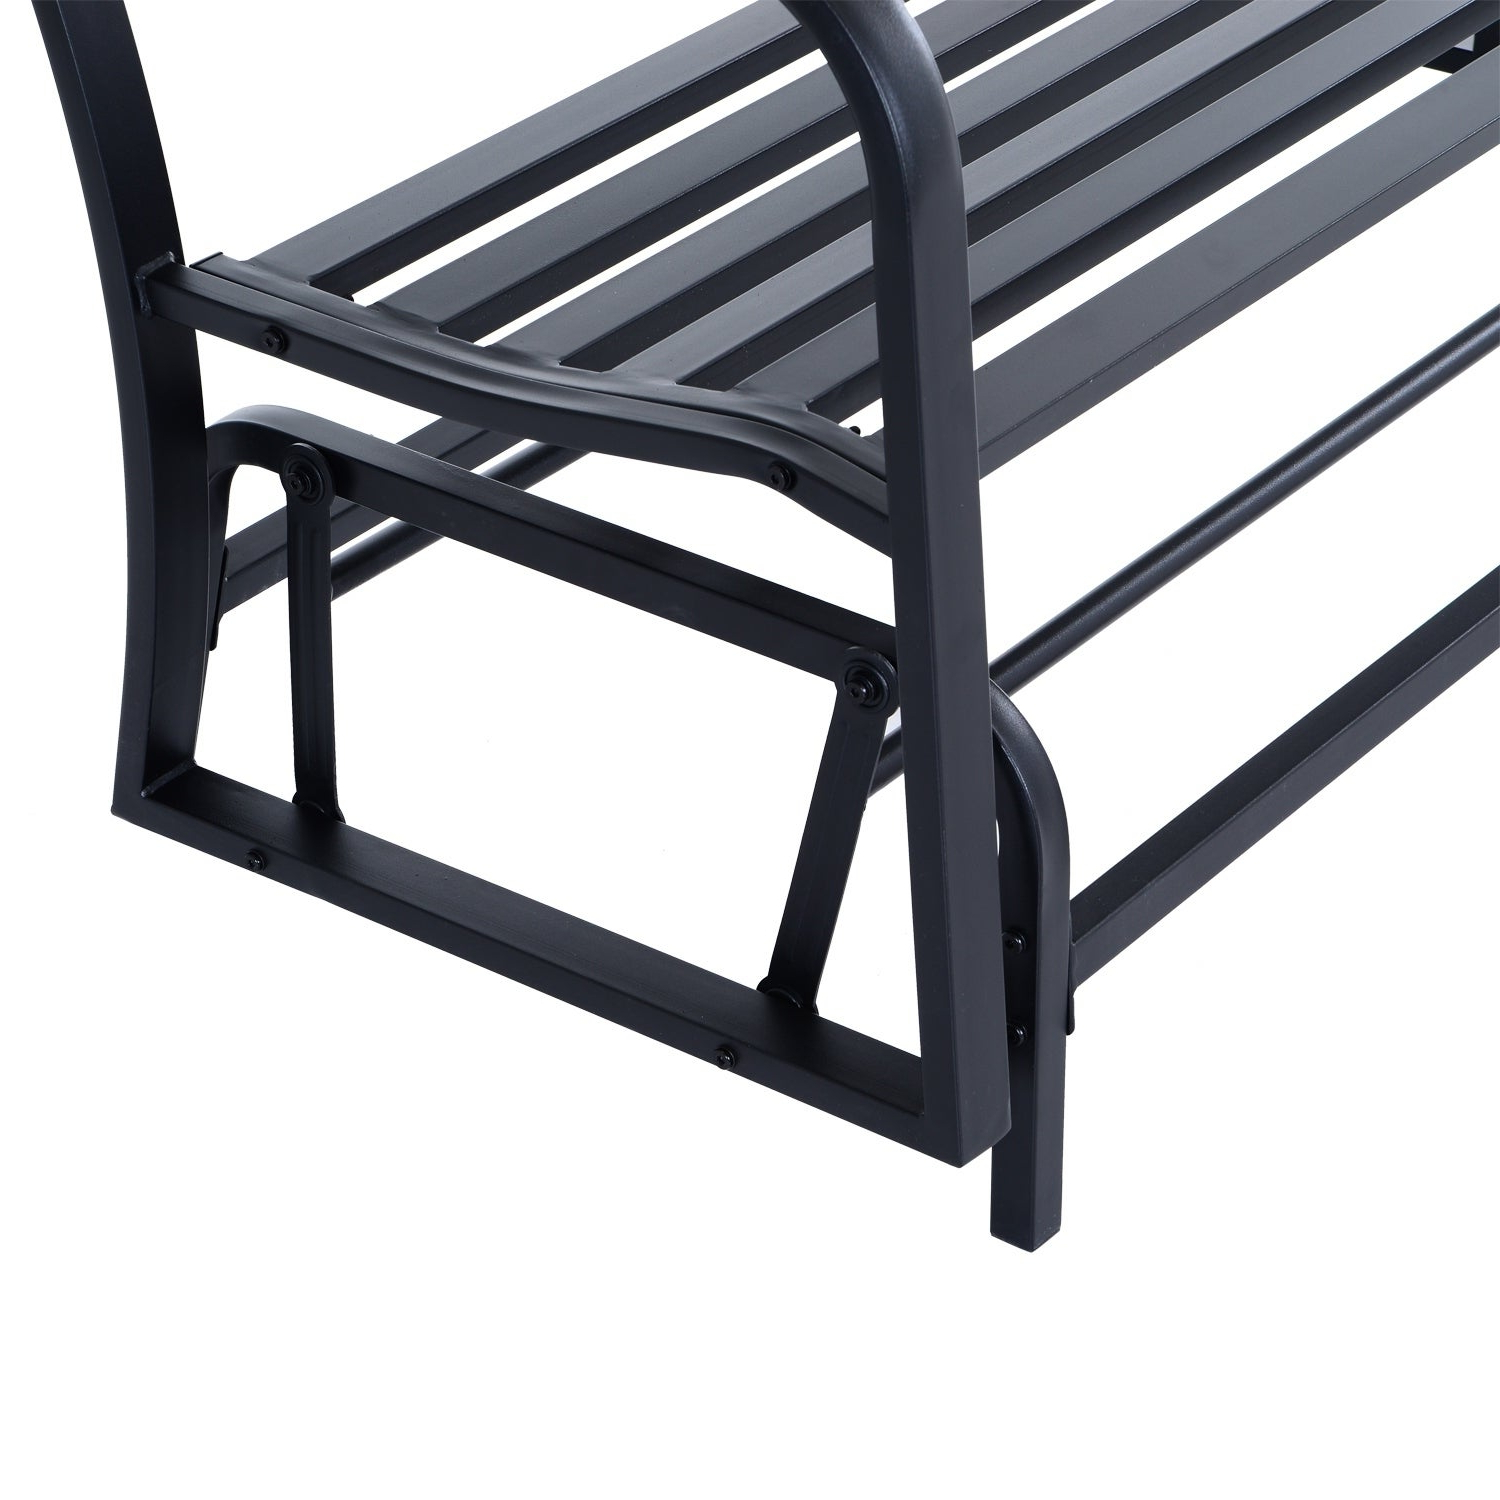 Fashionable Outsunny 50 Inch Outdoor Steel Patio Swing Glider Bench – Black Intended For Steel Patio Swing Glider Benches (View 2 of 25)